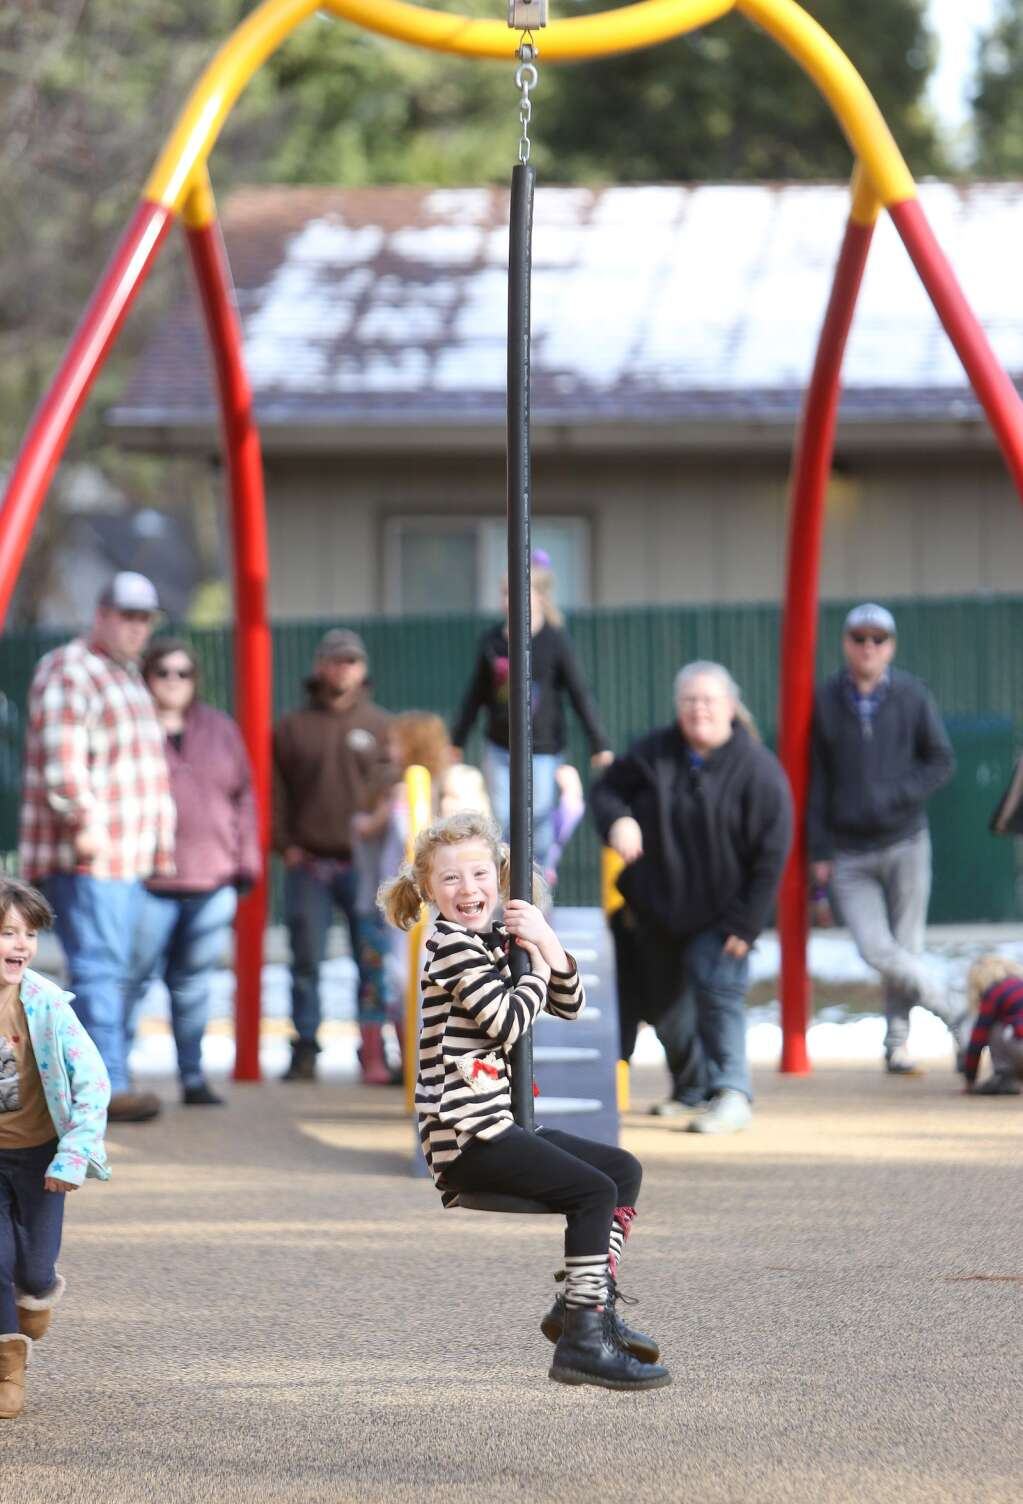 Camilla Makinson holds on tight to the popular zip line swing Jan. 20 at recently renovated Minnie Park in Grass Valley. | Photo: Elias Funez